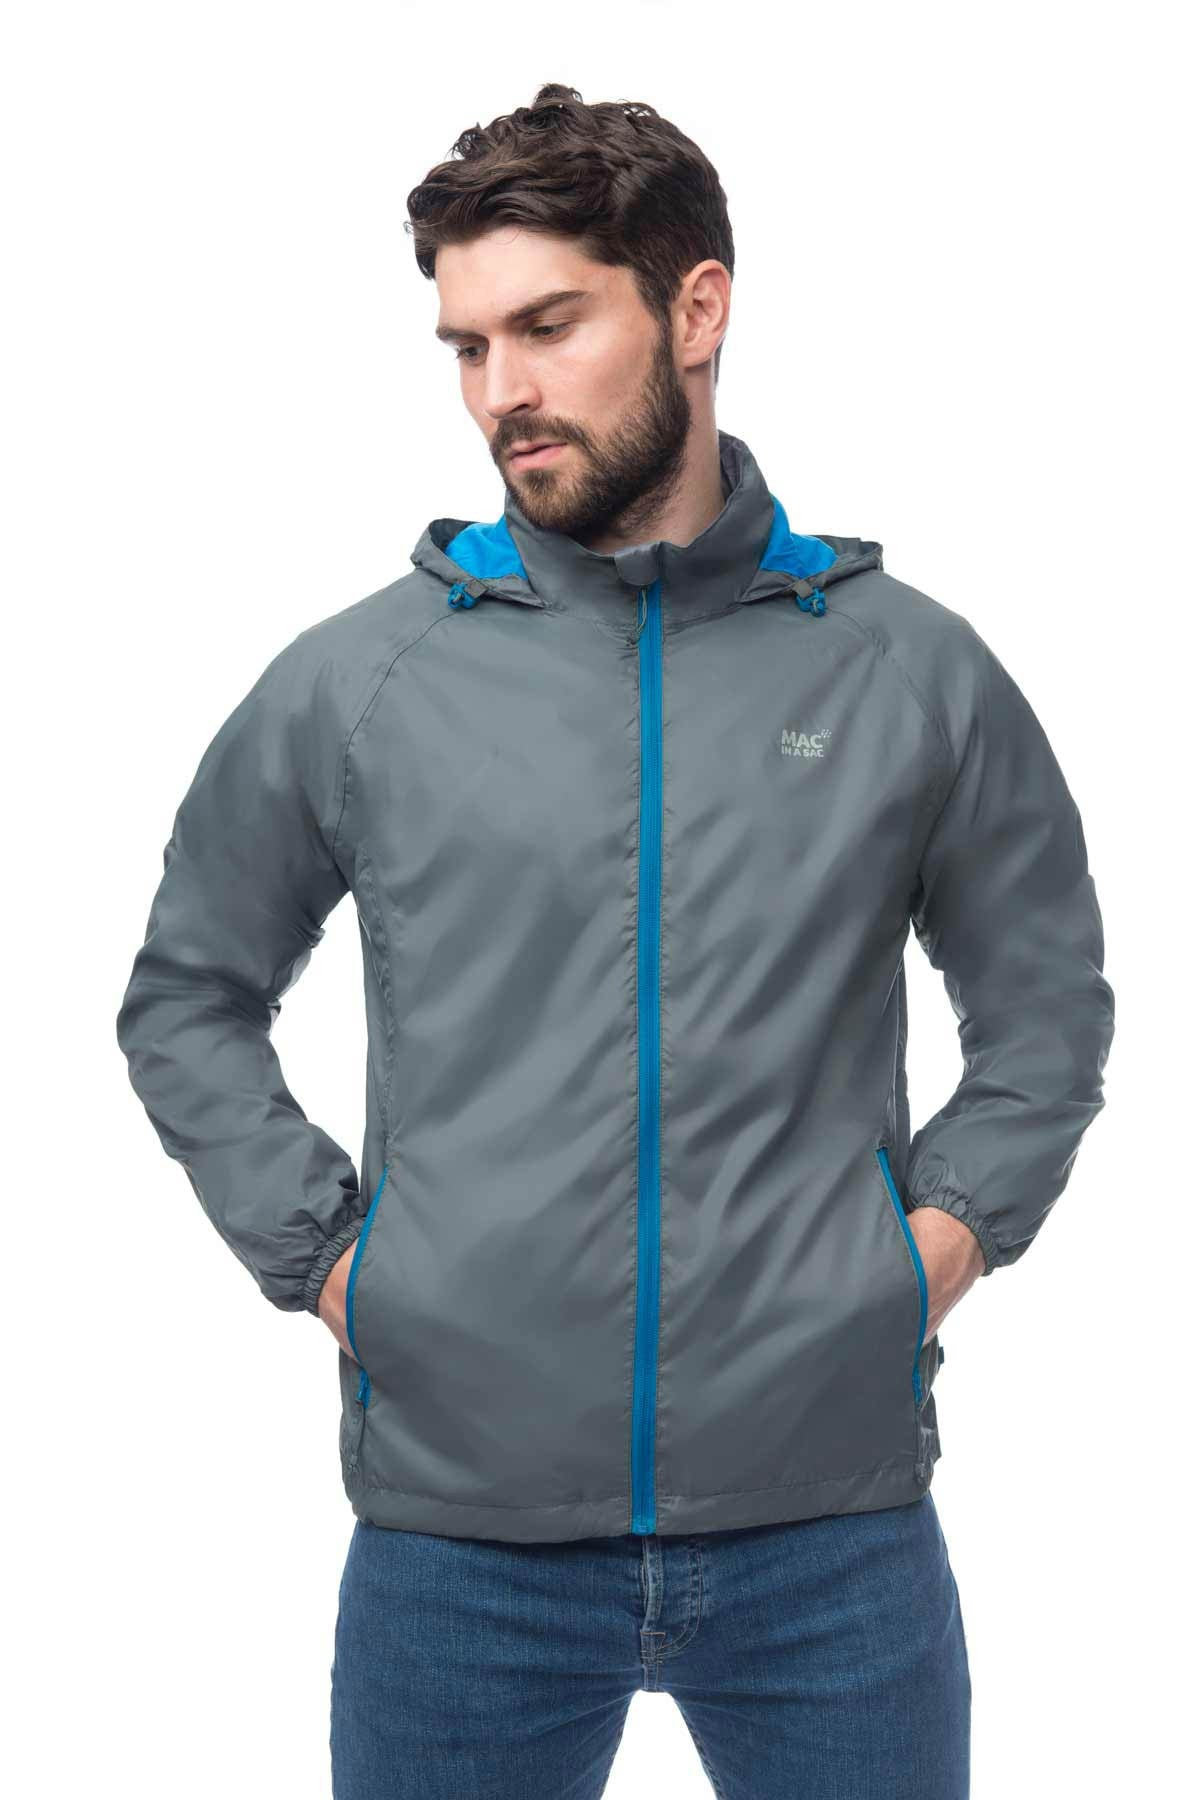 Mac in a Sac Synergy Jersey Lined Packable Waterproof Jacket in Grey, with contrast blue zip